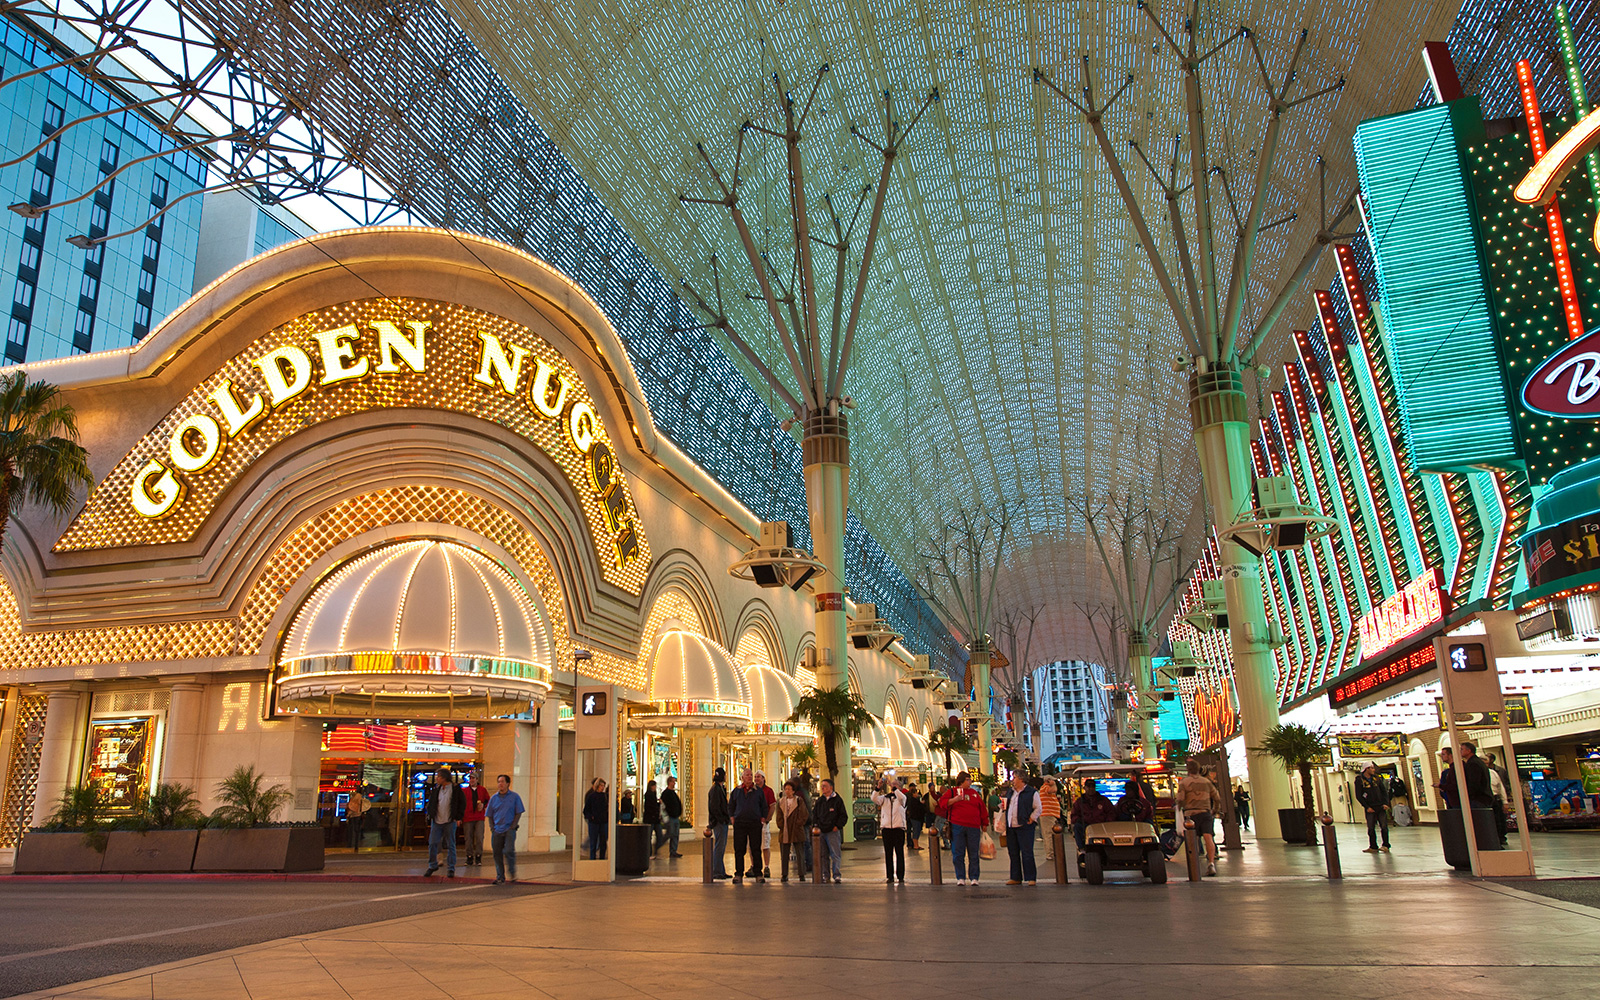 FREETHINGS0815-las-vegas-golden-nugget.jpg